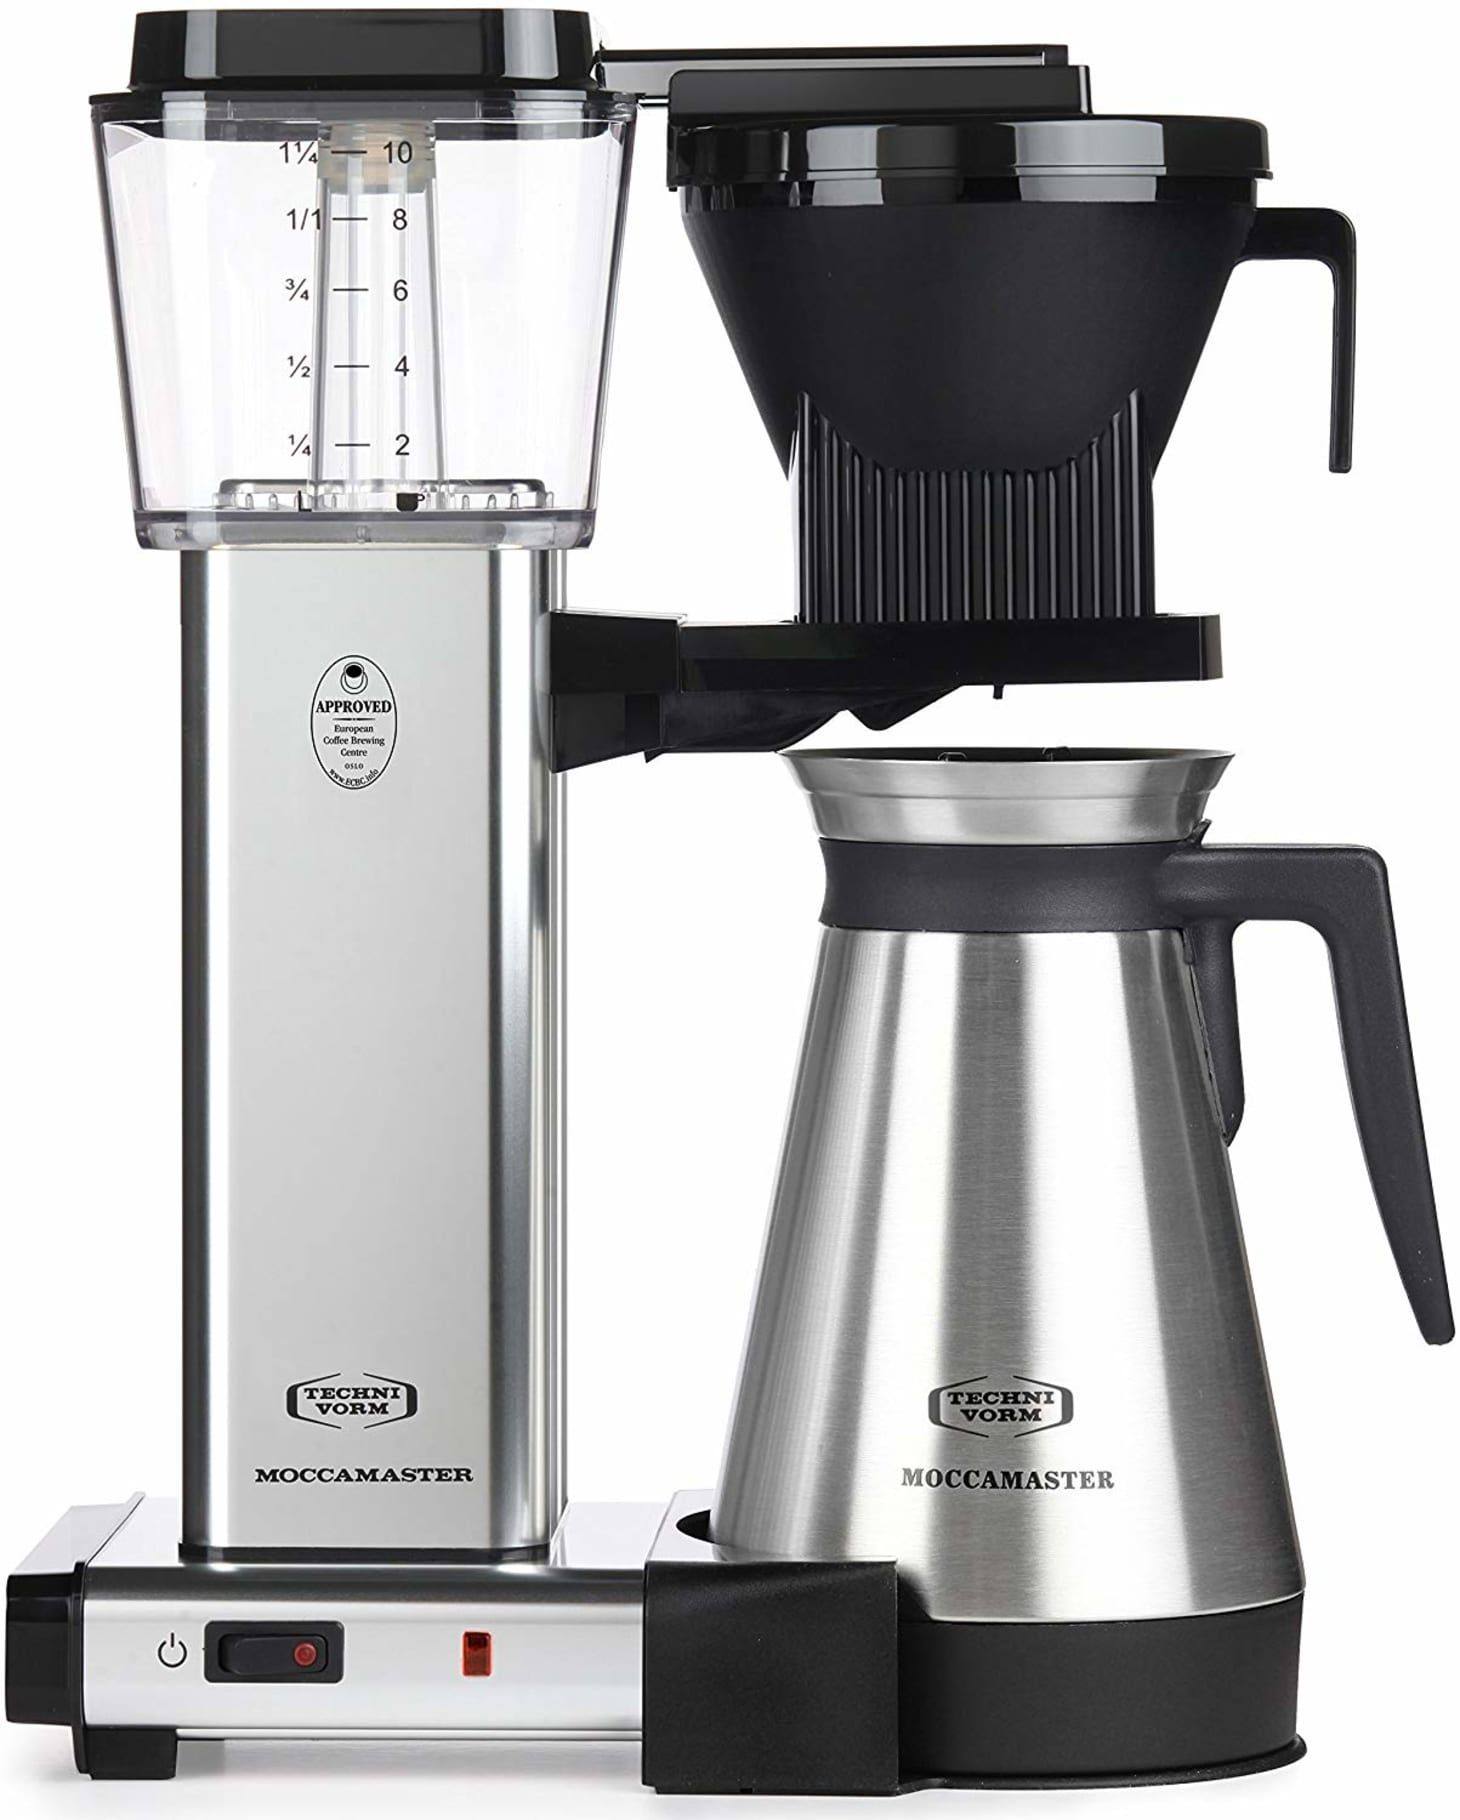 9 Best Coffee Makers - Drip, Espresso, Cold Brew | Kitchn ...